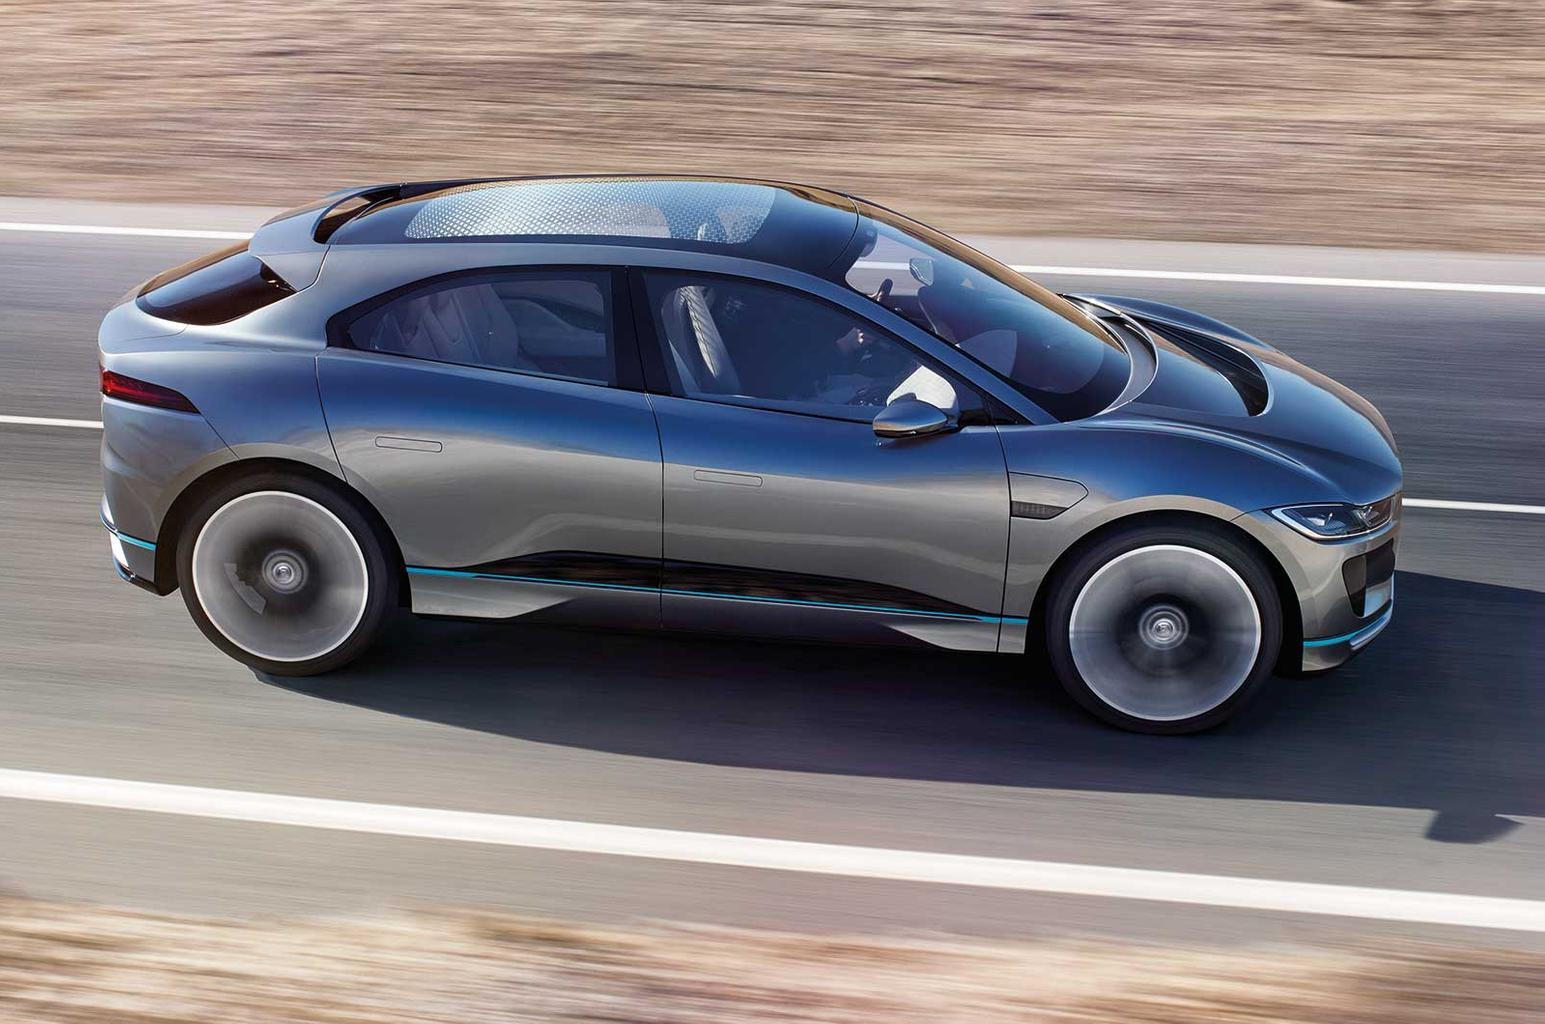 2018 Jaguar I-Pace – price, specs and release date